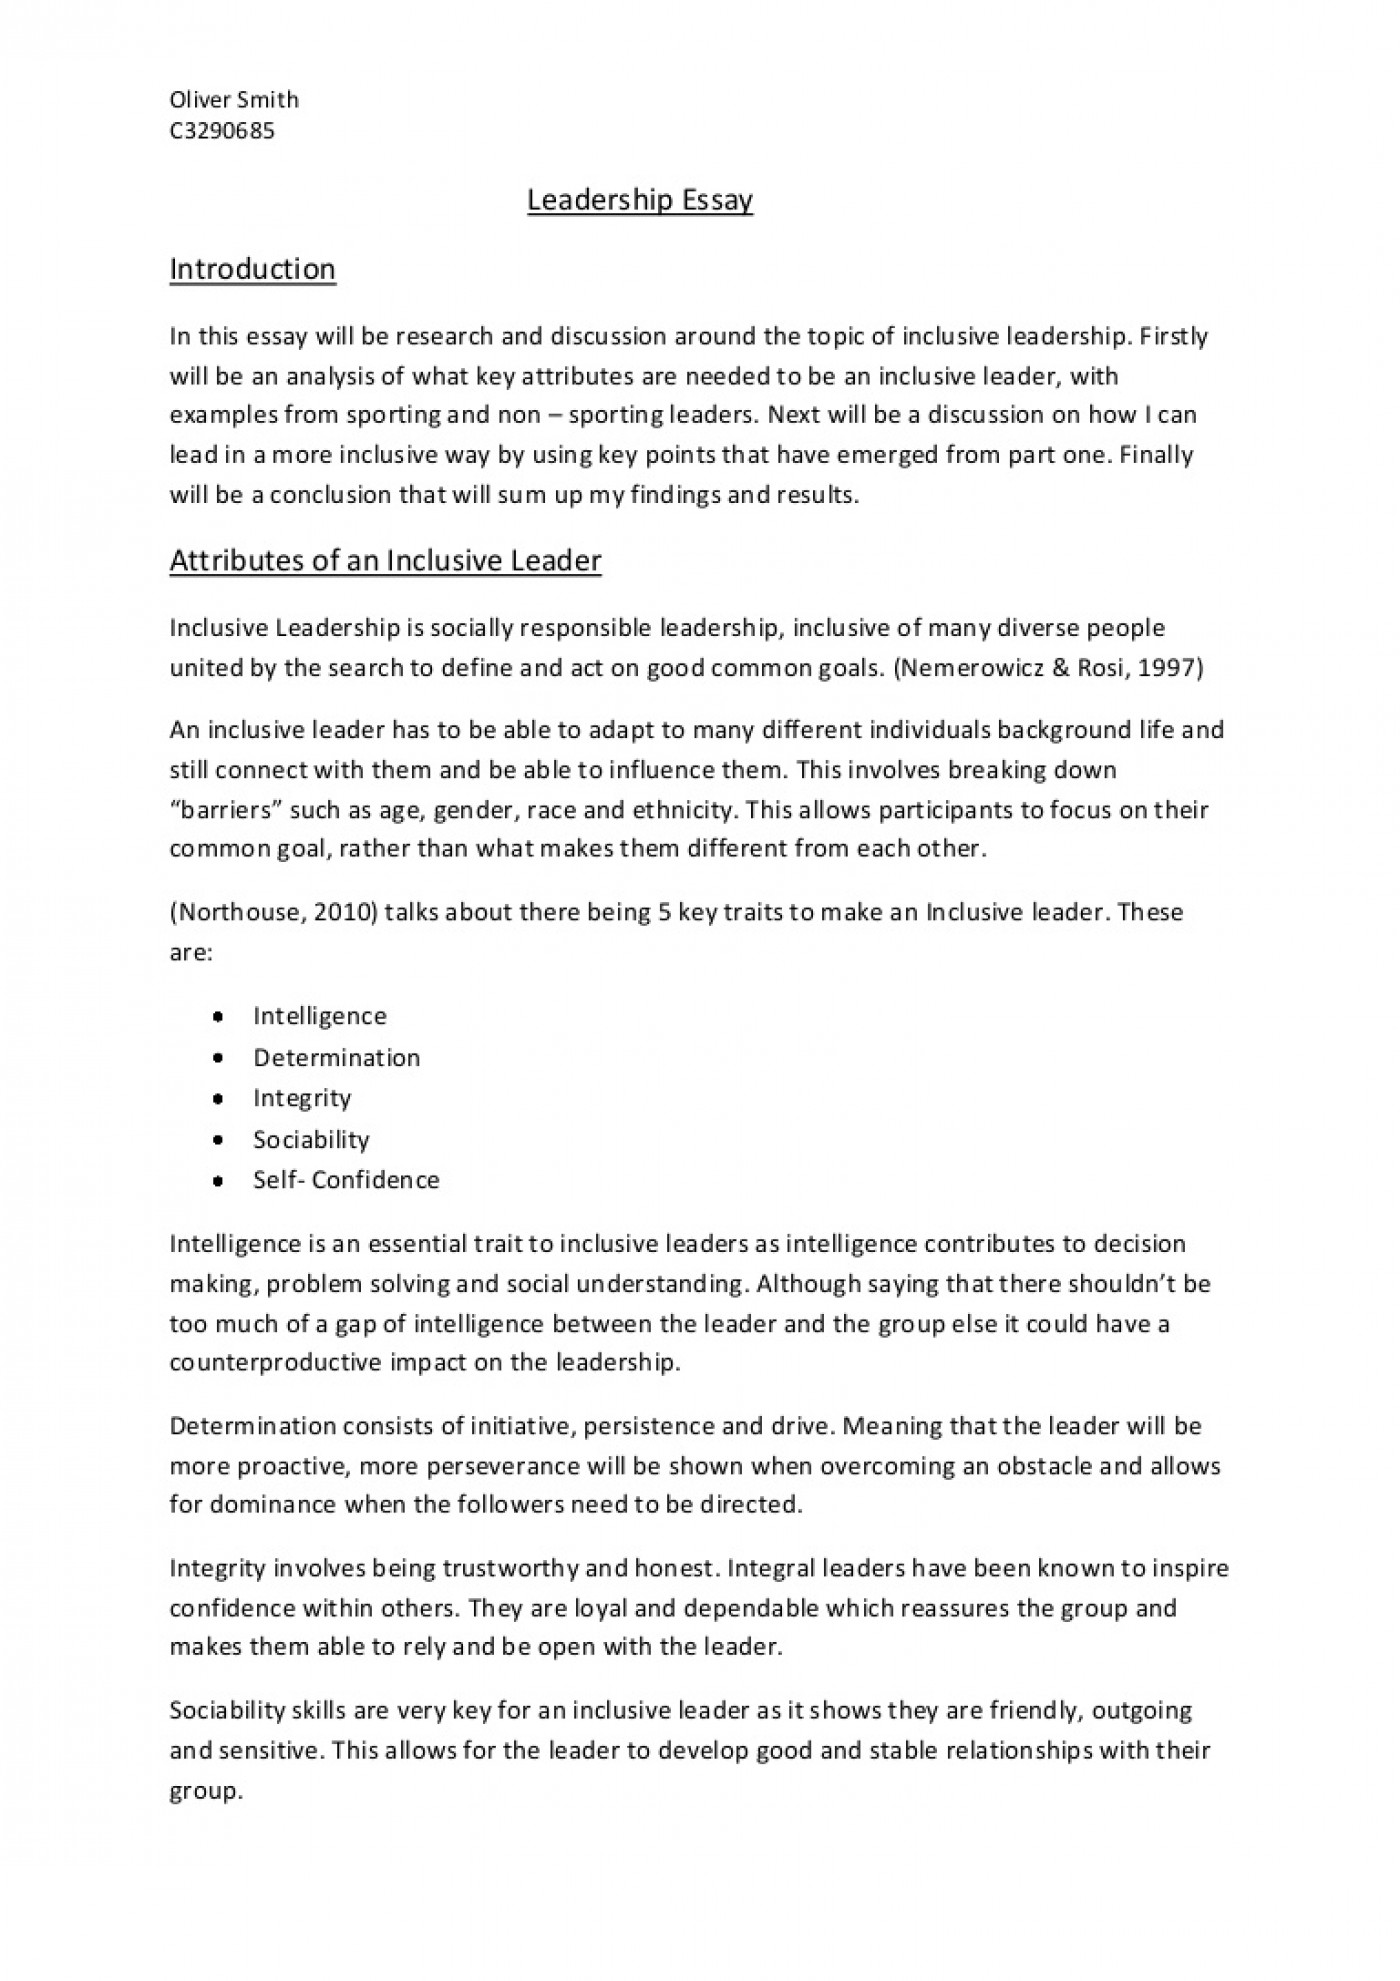 001 What Is Leadership Essay Leadershipessay Phpapp01 Thumbnail Excellent Military Example Makes A Good Leader Pdf 1400